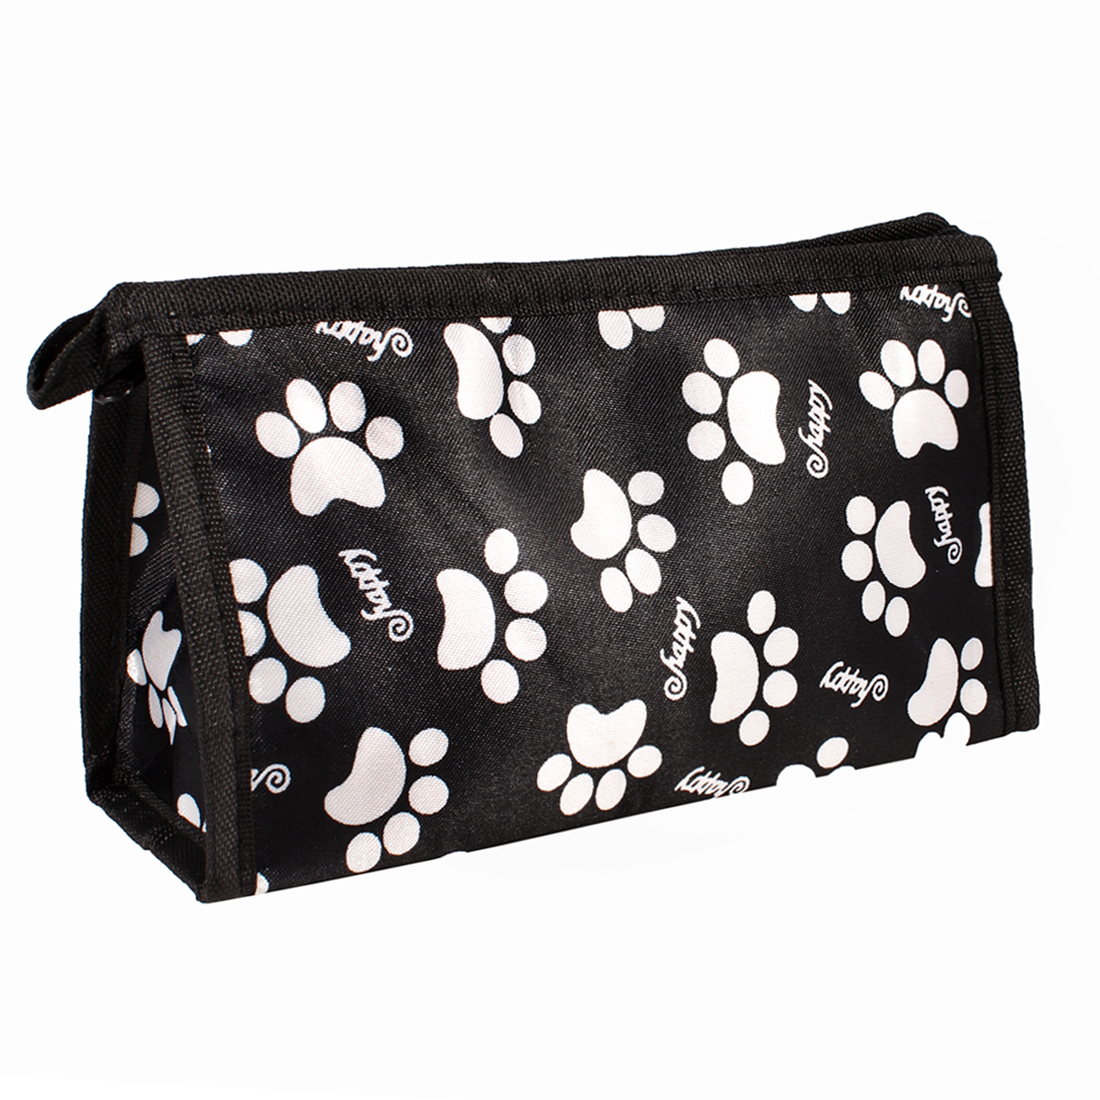 White Dog Paw Pattern Black Zipper Closure Makeup Cosmetic Pouch Bag